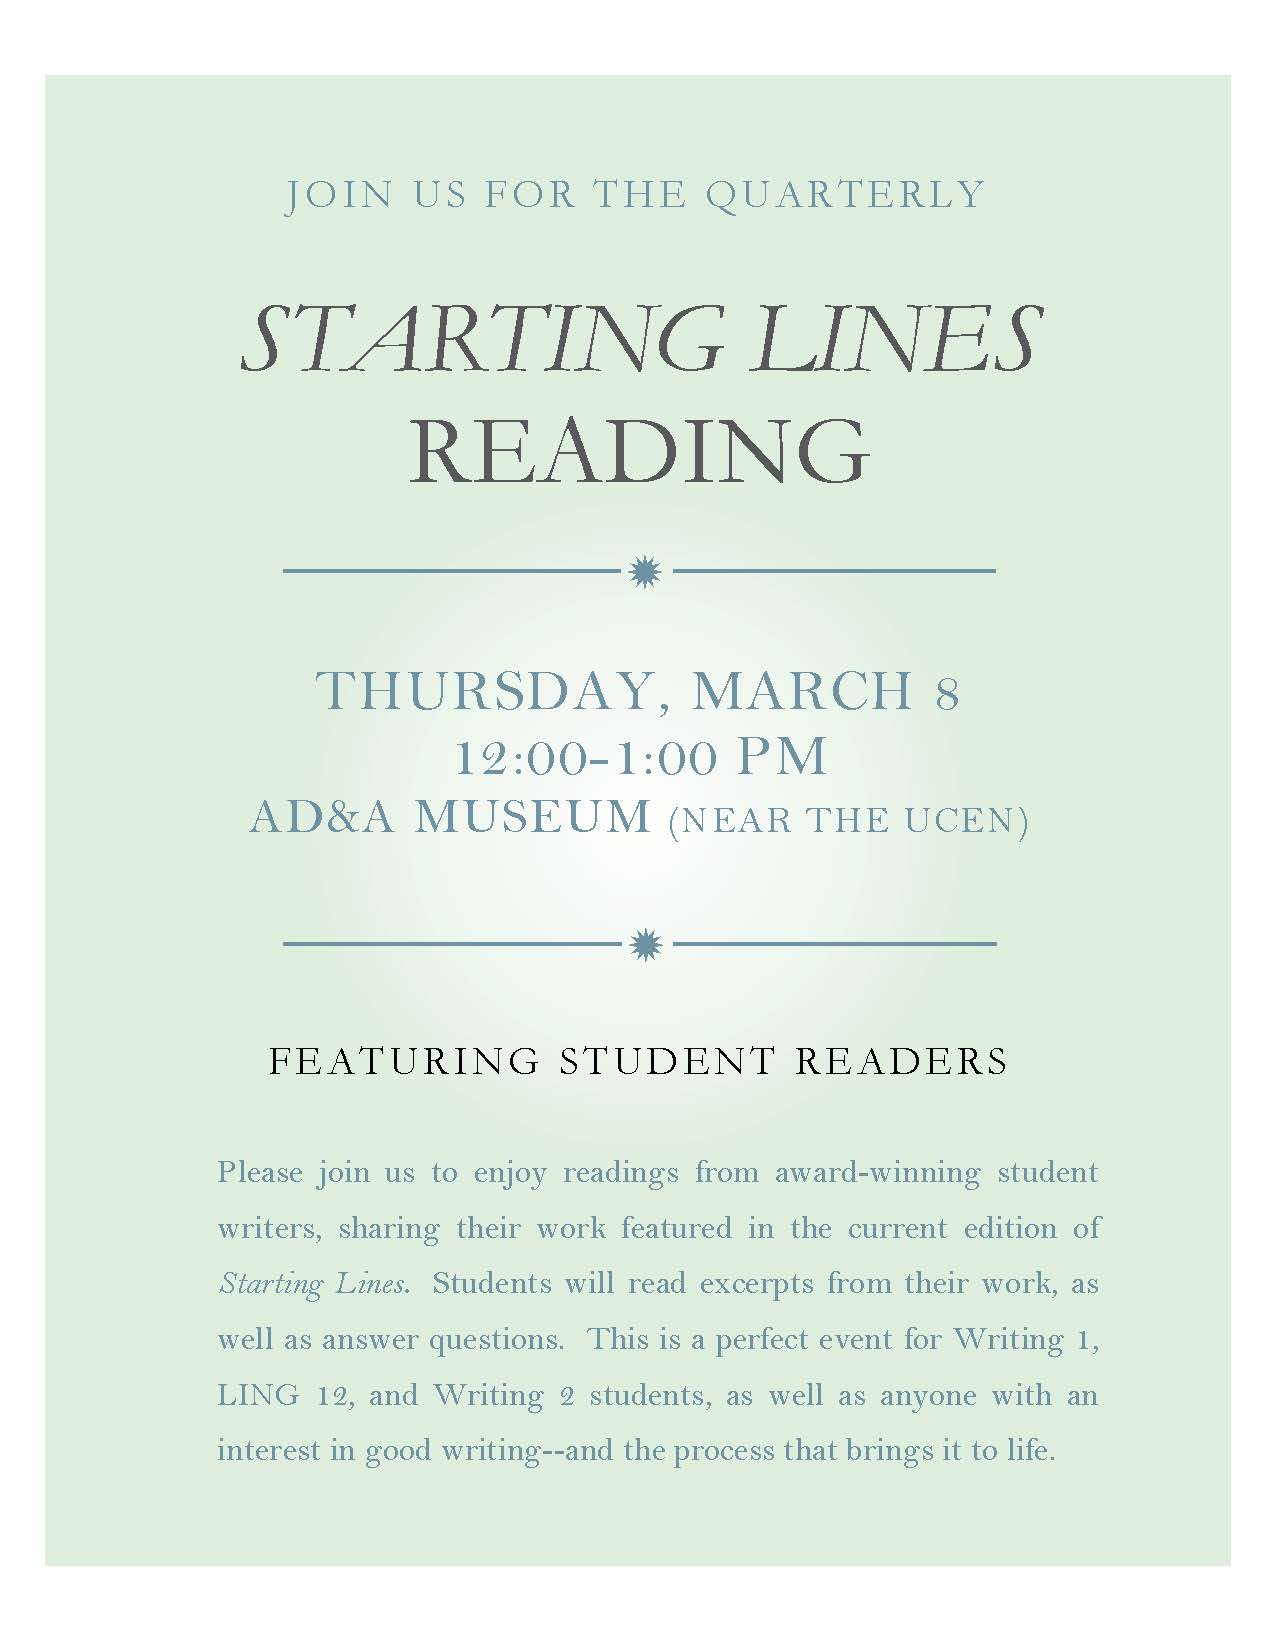 Invitation to starting lines quarterly reading writing program thursday 38 1200 100pm ada museum contact bob krut for additional info rkrutwritingucsb stopboris Gallery